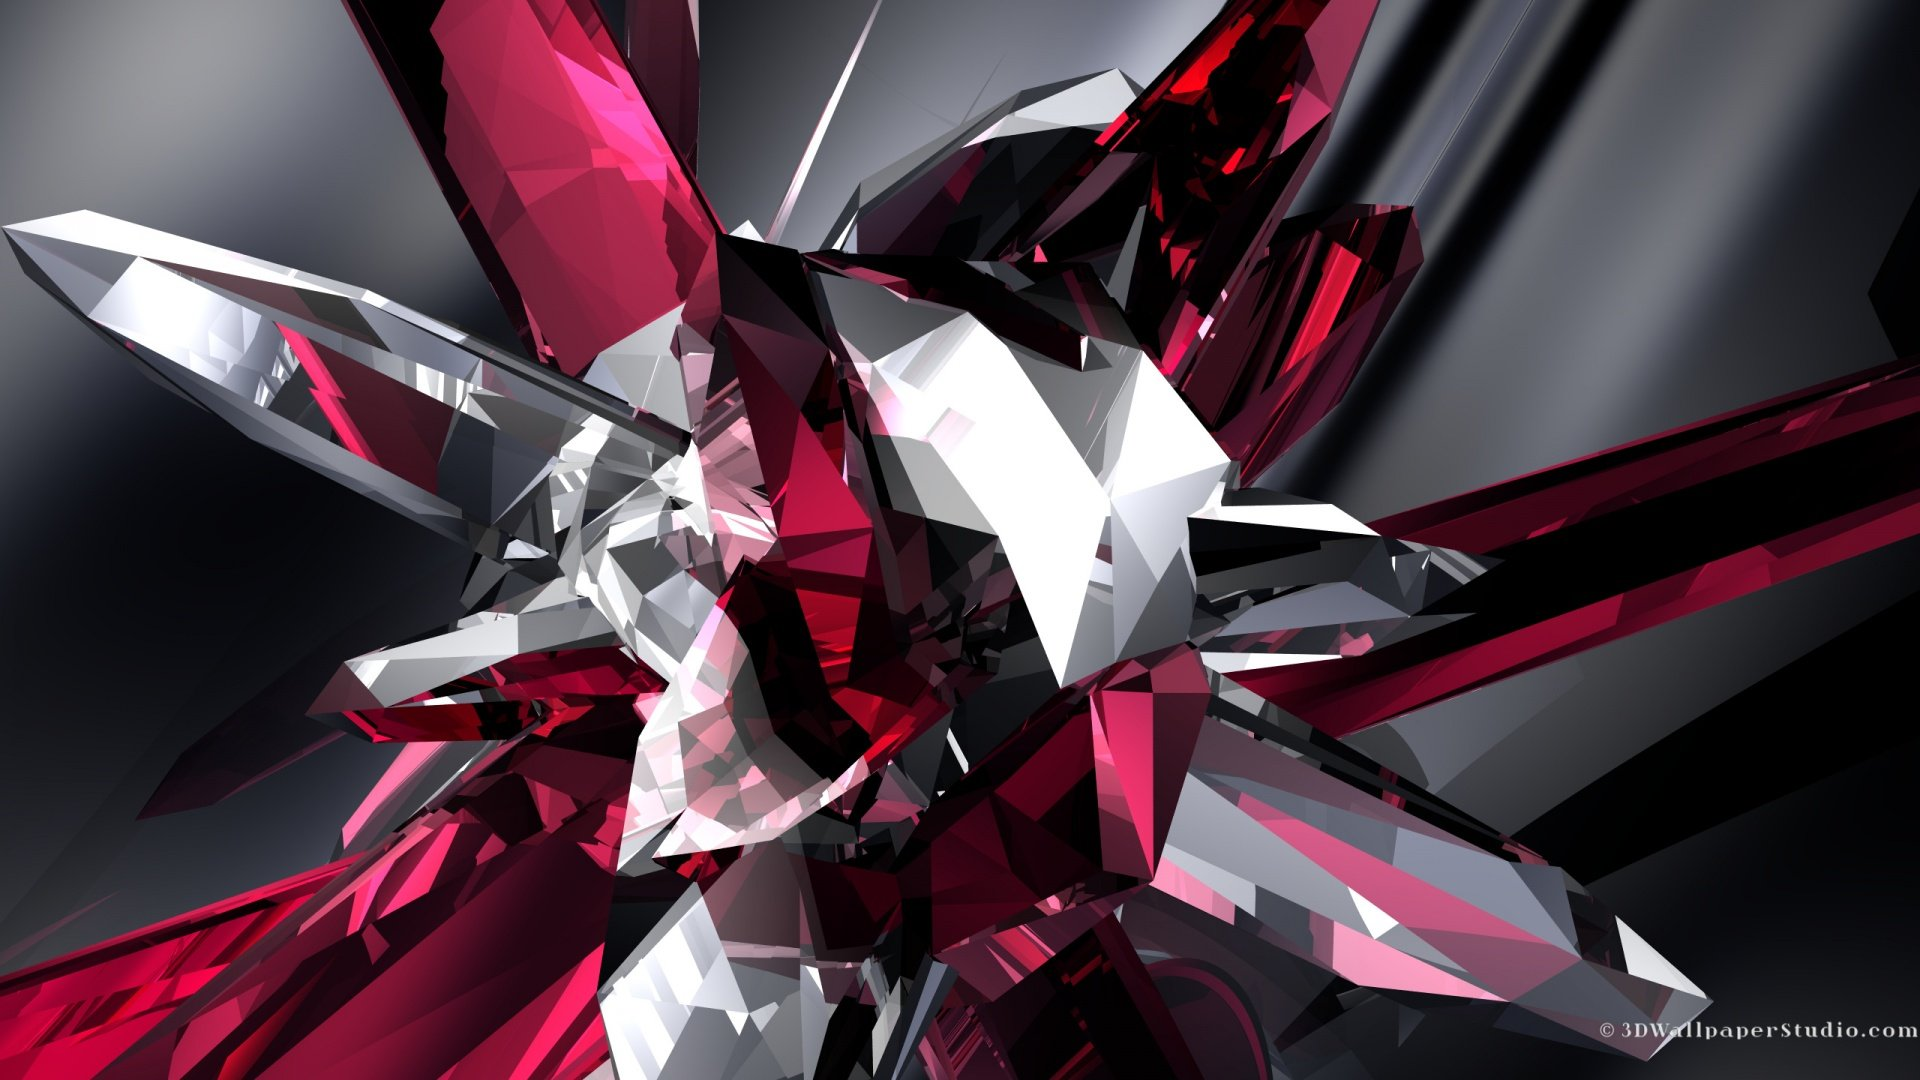 Glass 3d Hd Wallpapers 1080p: HD 3D Abstract Wallpapers 1920x1080